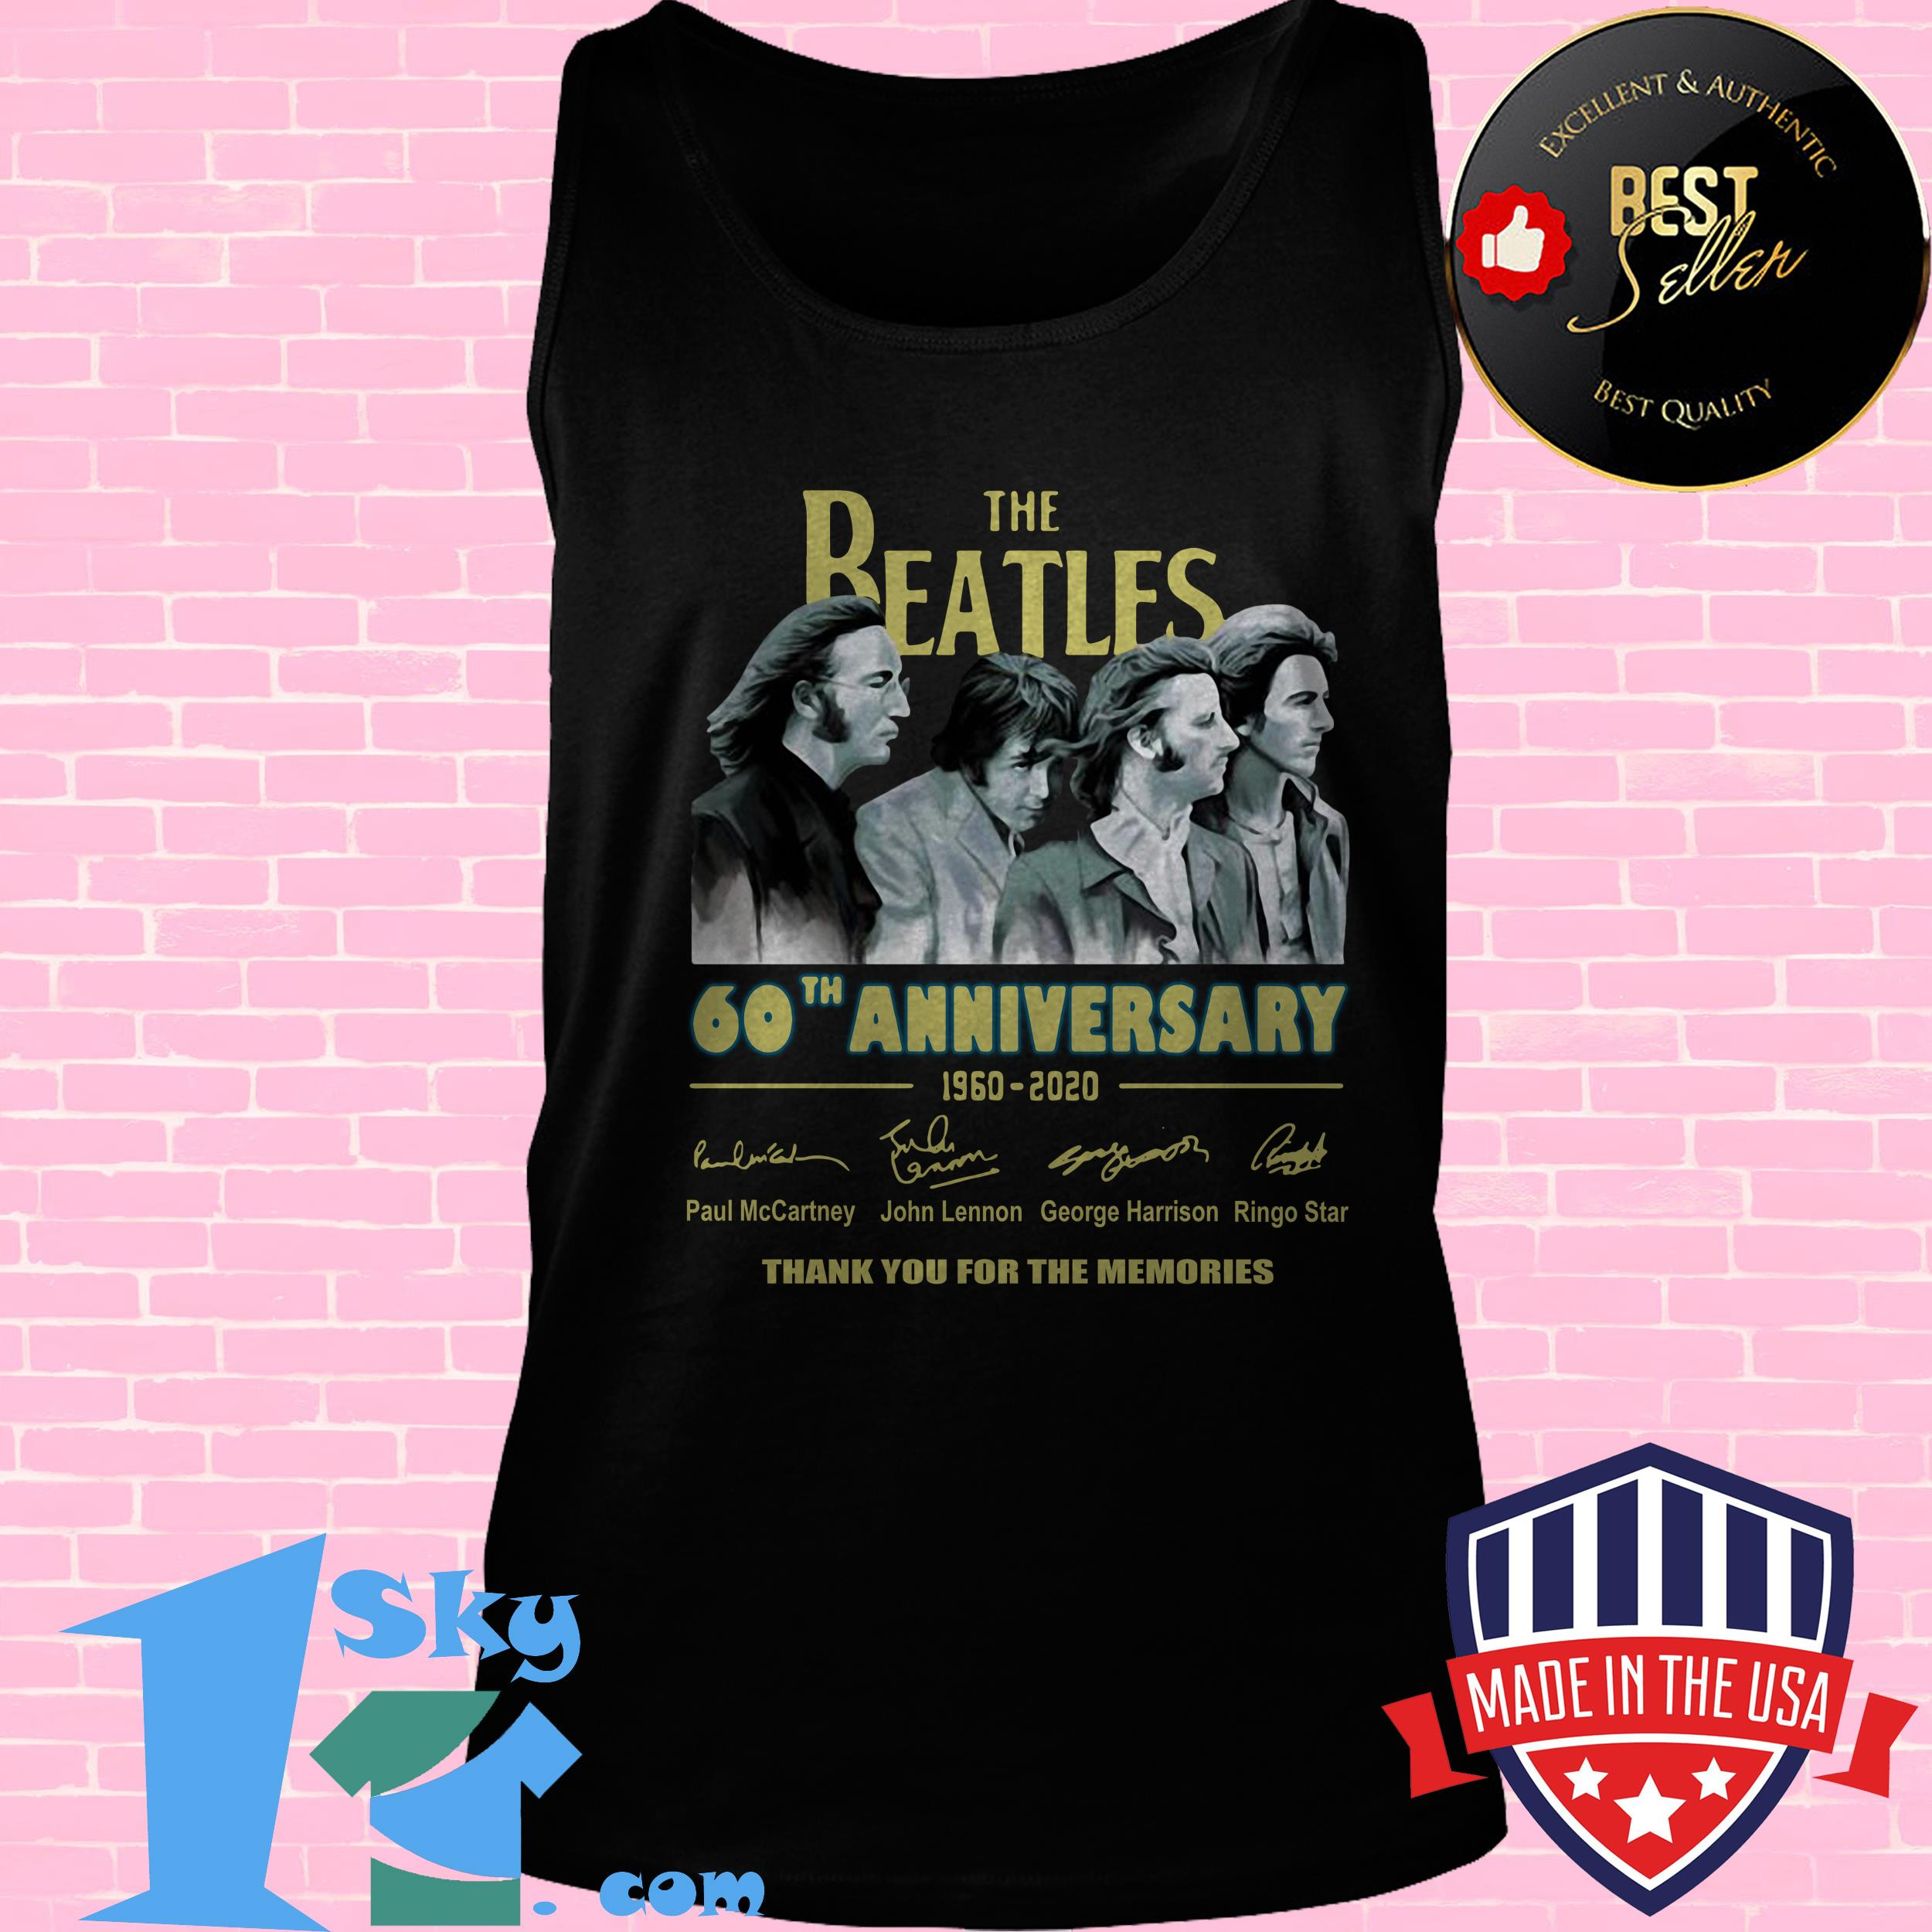 the beatles 60th anniversary 1960 2020 memories signature tank top - The Beatles 60th Anniversary 1960 2020 Memories Signature shirt